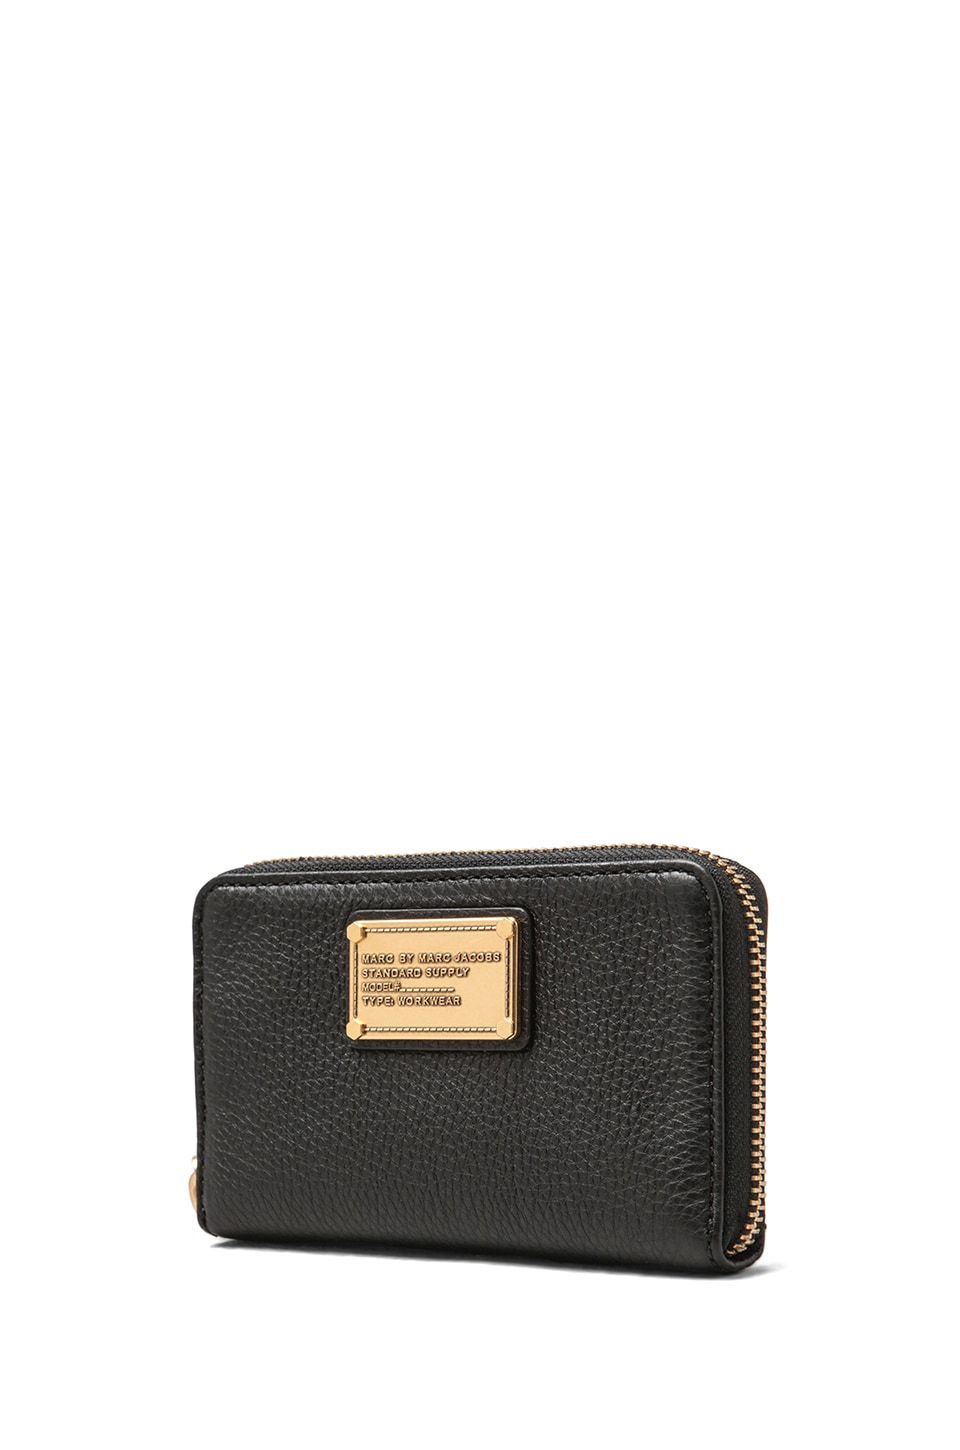 Marc by Marc Jacobs Classic Q Core Wingman Wallet in Black